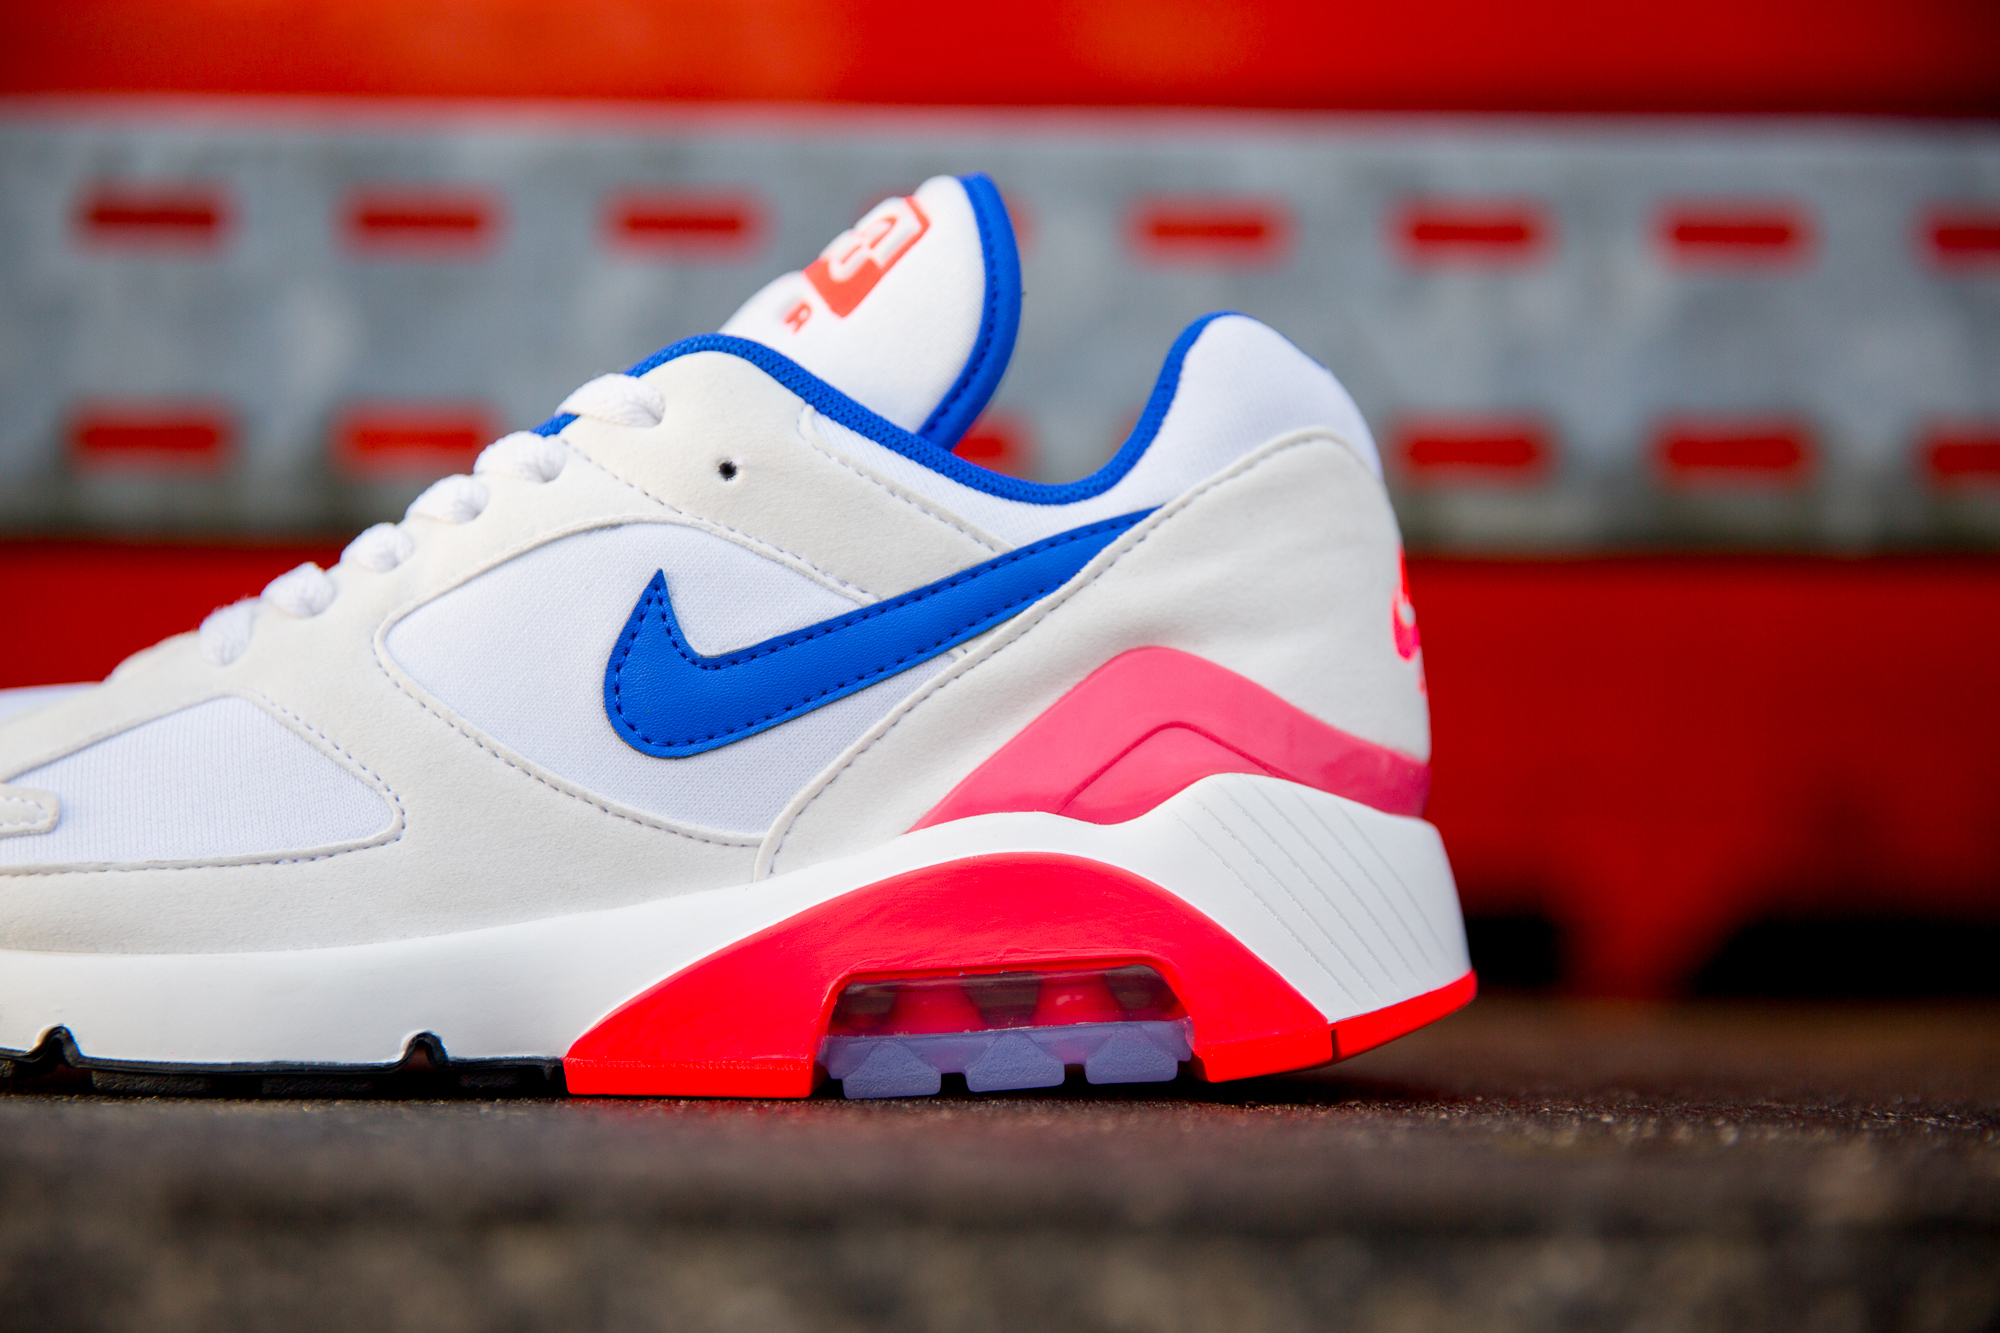 Nike Air 180 OG 'Ultramarine'